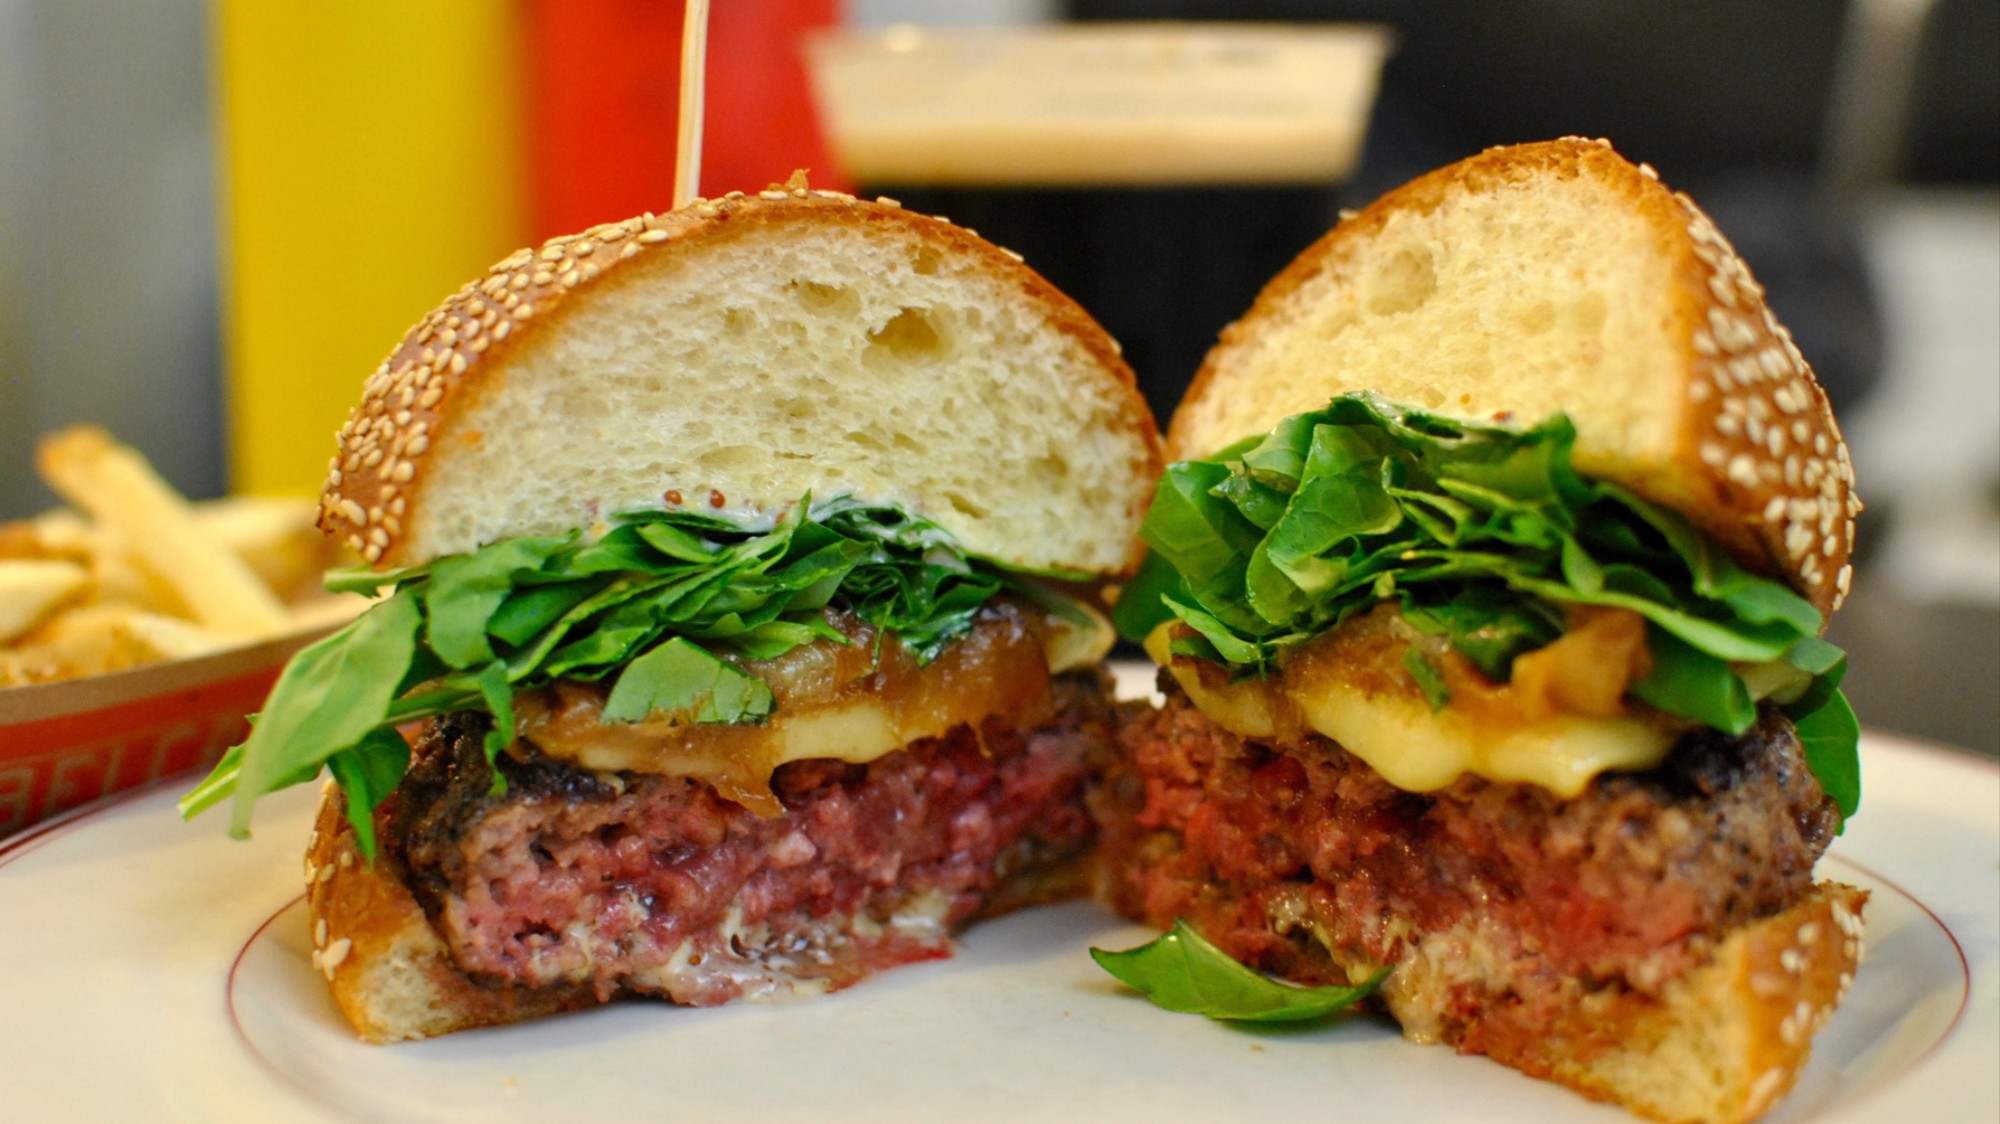 This Is What a 100-Day-Old Cheeseburger Tastes Like - VICE